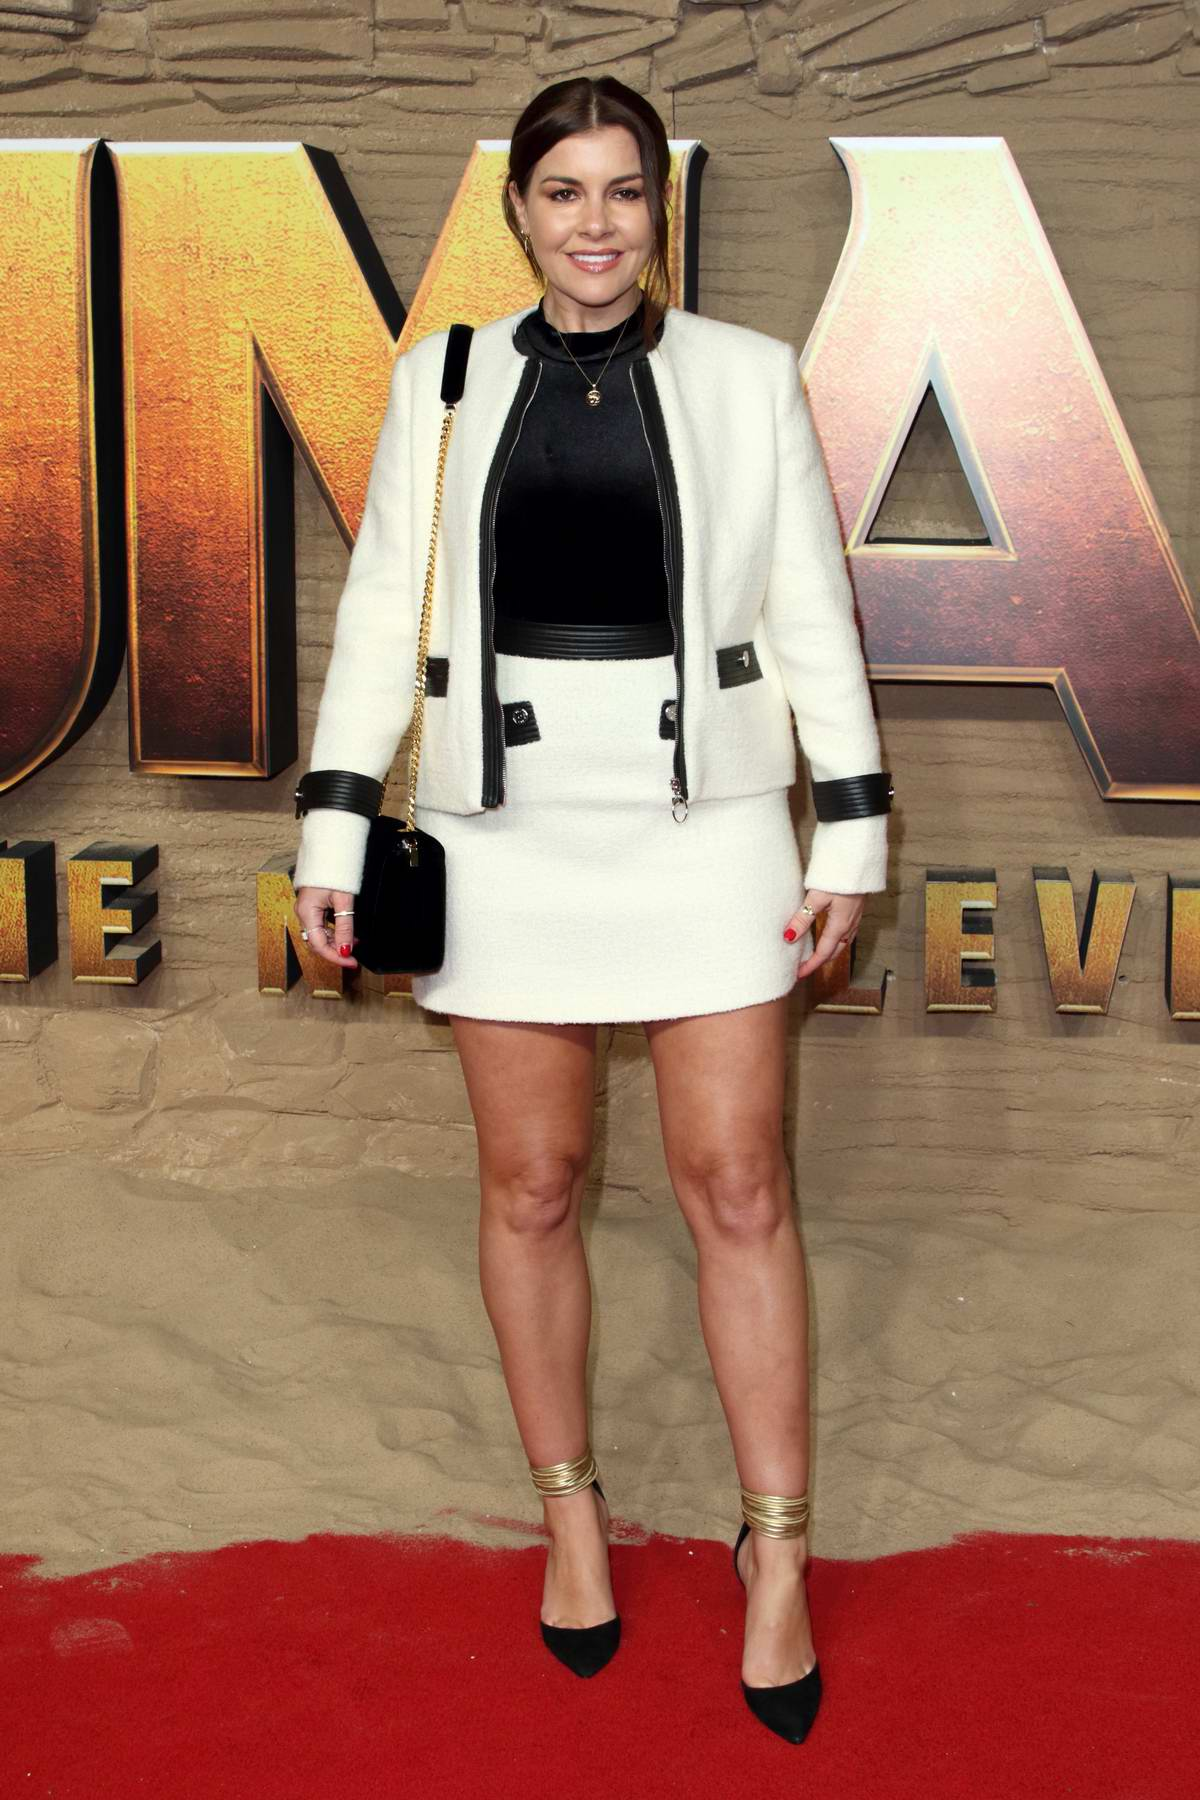 Imogen Thomas attends the Premiere of Jumanji: The Next Level in London, UK